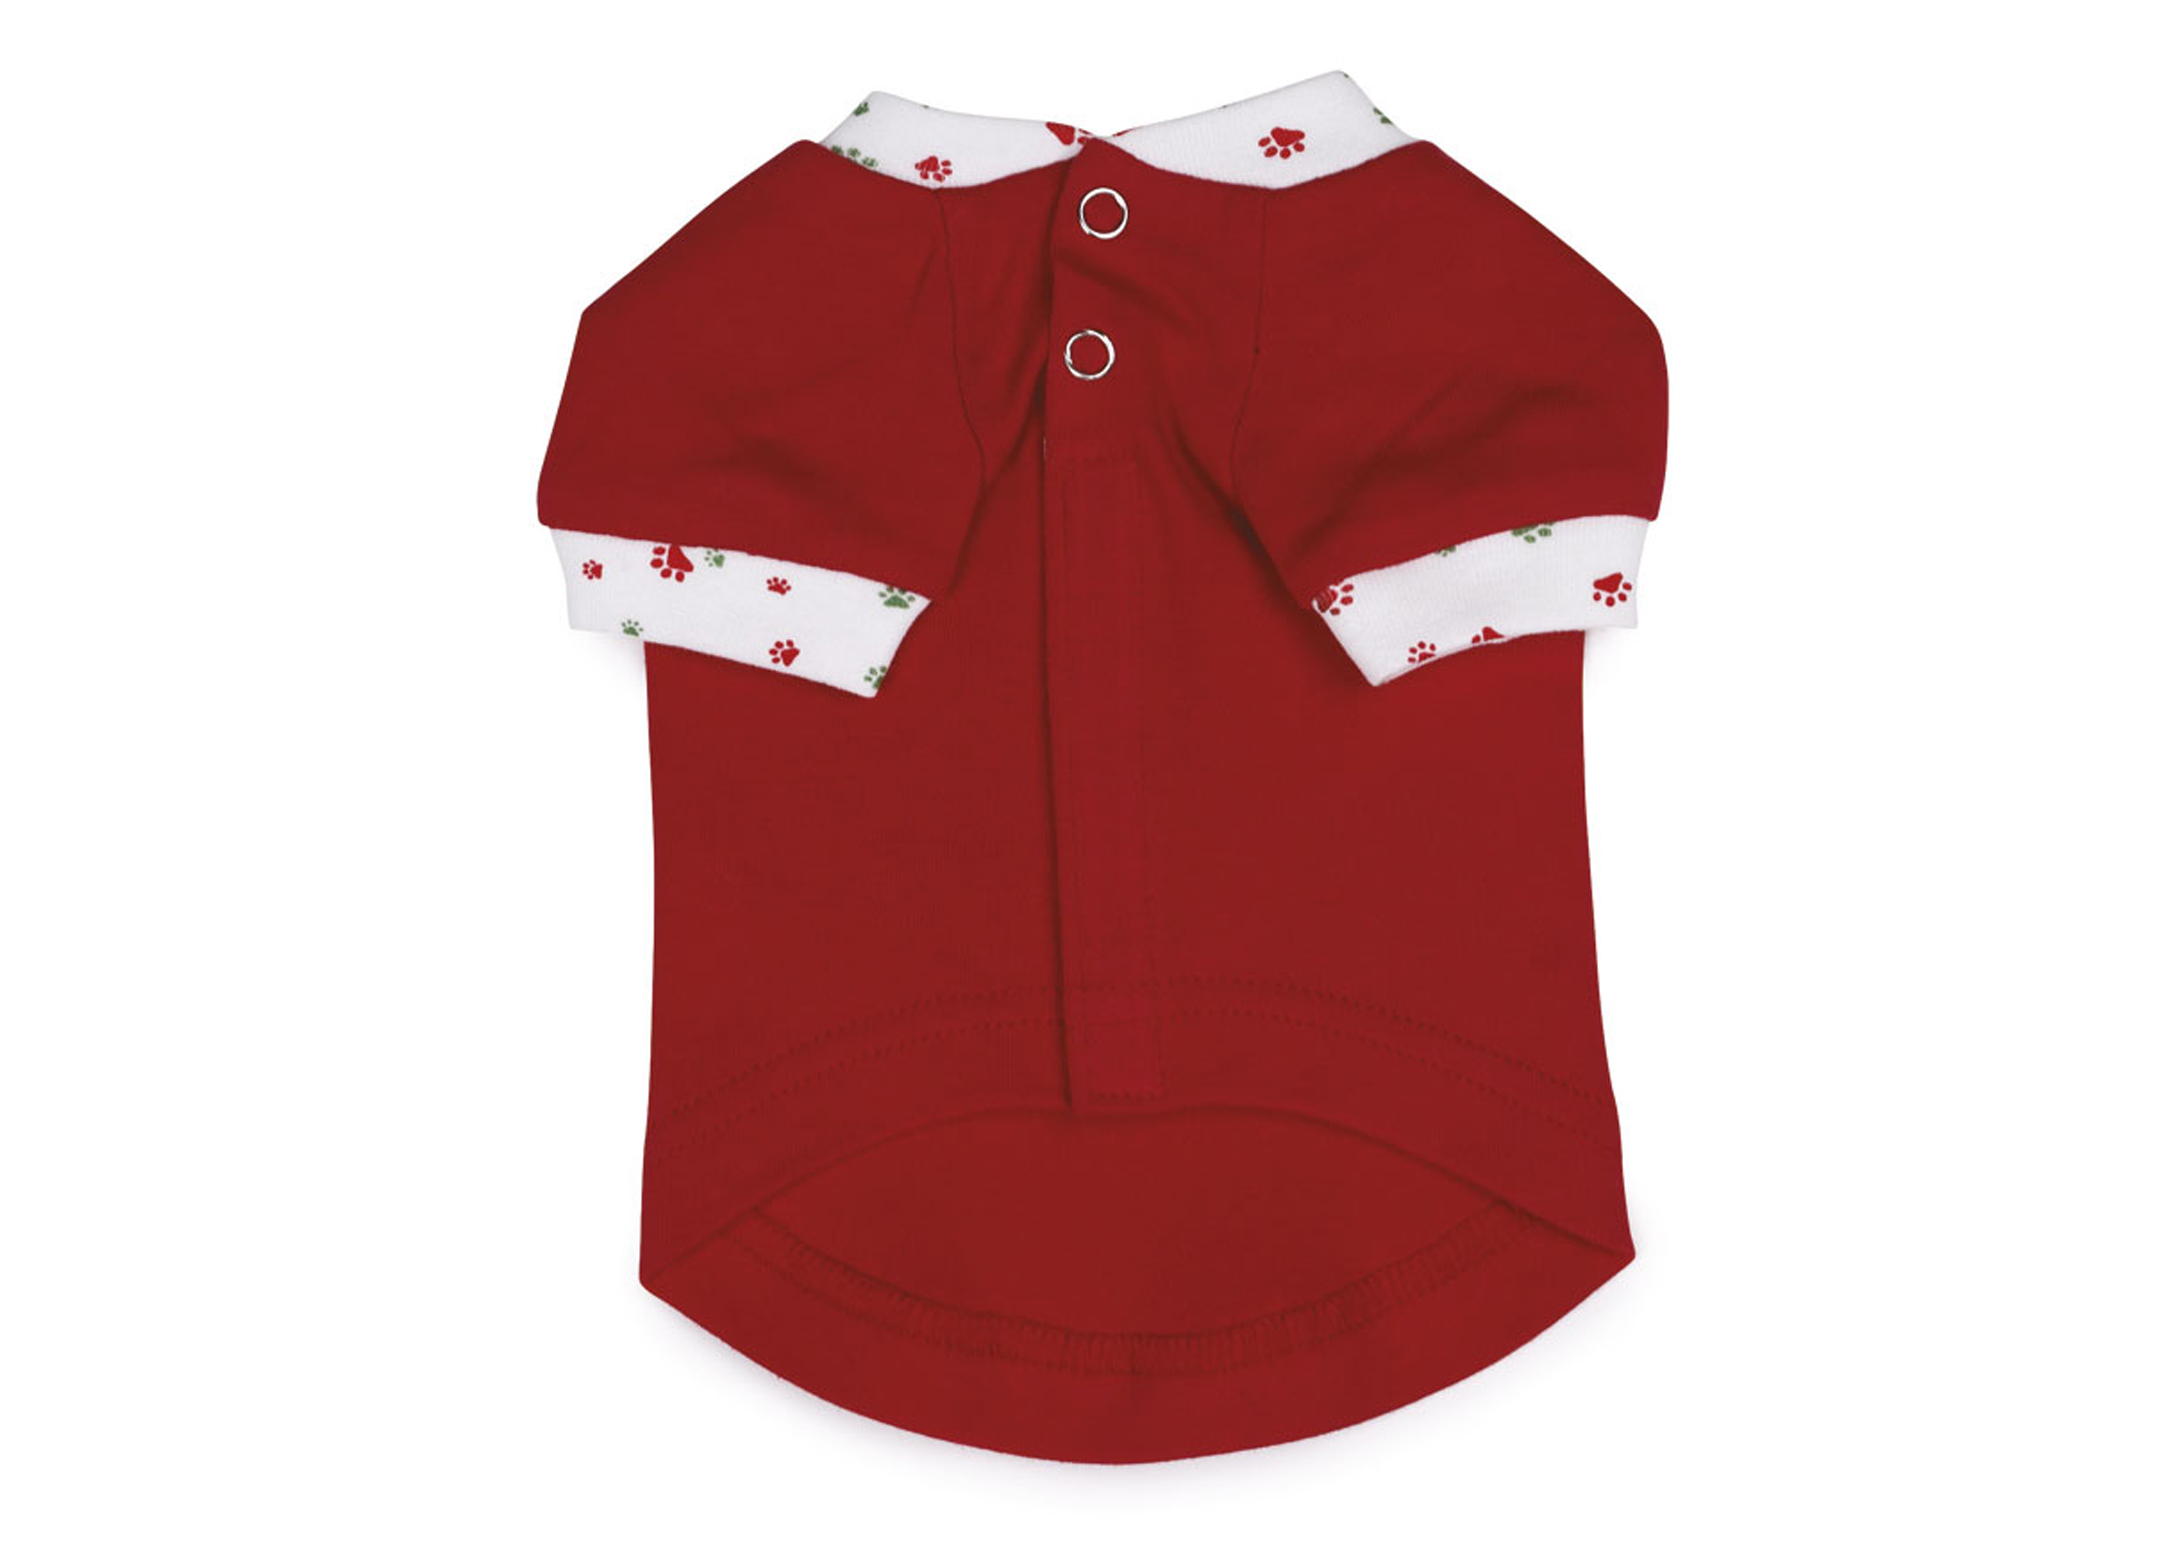 East Side Collection Xmas Santa's Babie Onesie Shirt Kledij Voor Honden